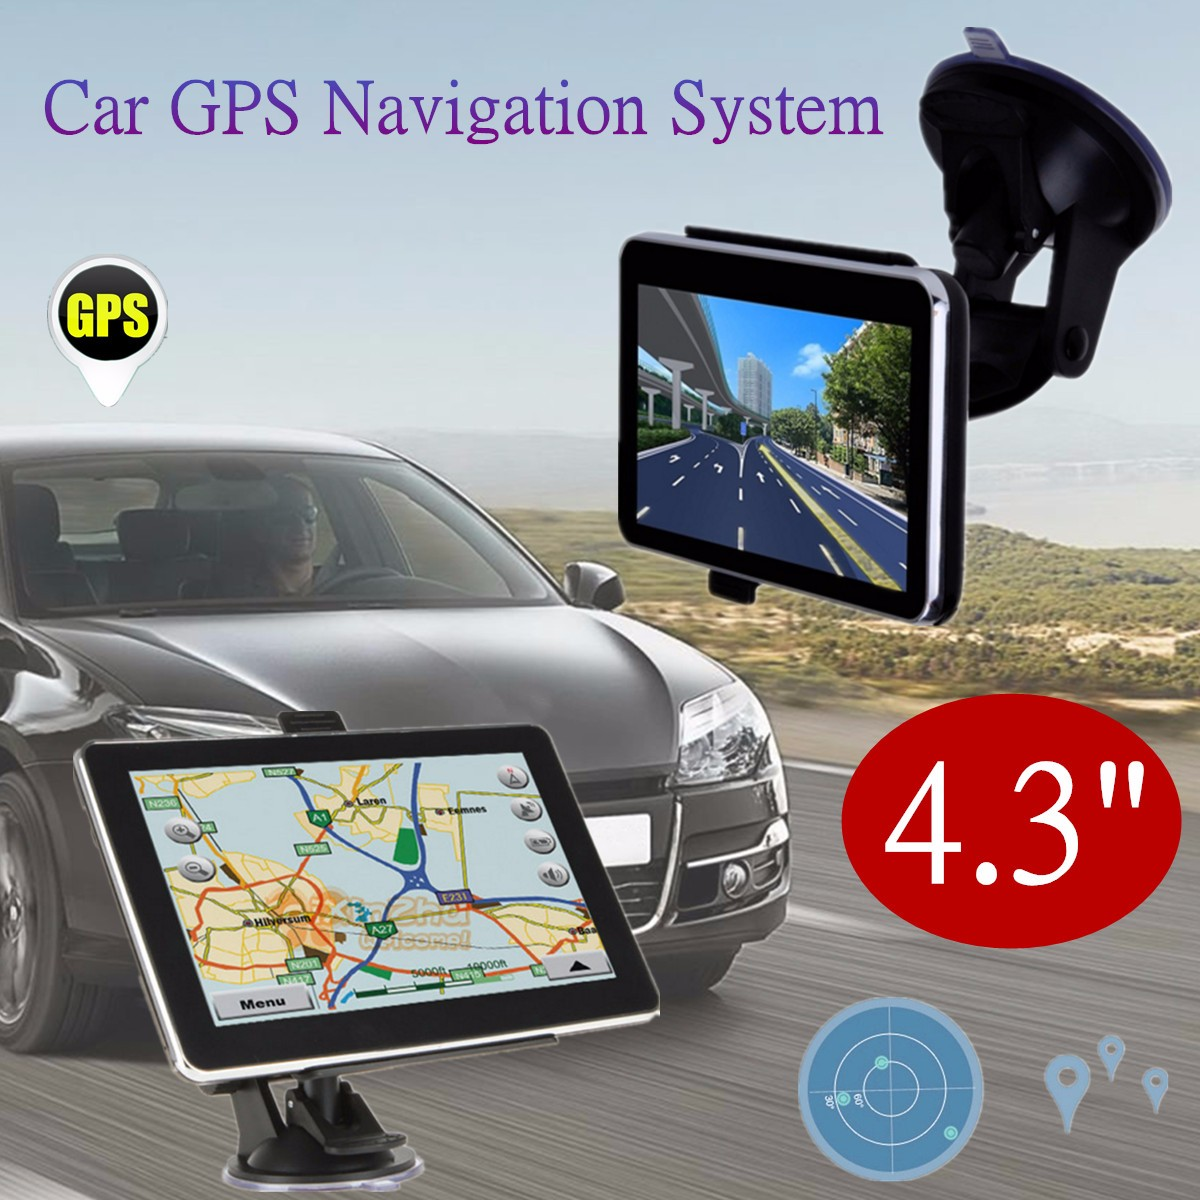 4.3 inch Car GPS Navigation 8GB MP3/MP4 Player Automobile Navigator FM Radio Europe & UK Free Map Vehicle gps Truck Map Sat Nav 5 inch tft lcd display car navigation device gps navigator sat nav 8gb 560 high sensitive gps receiver america map